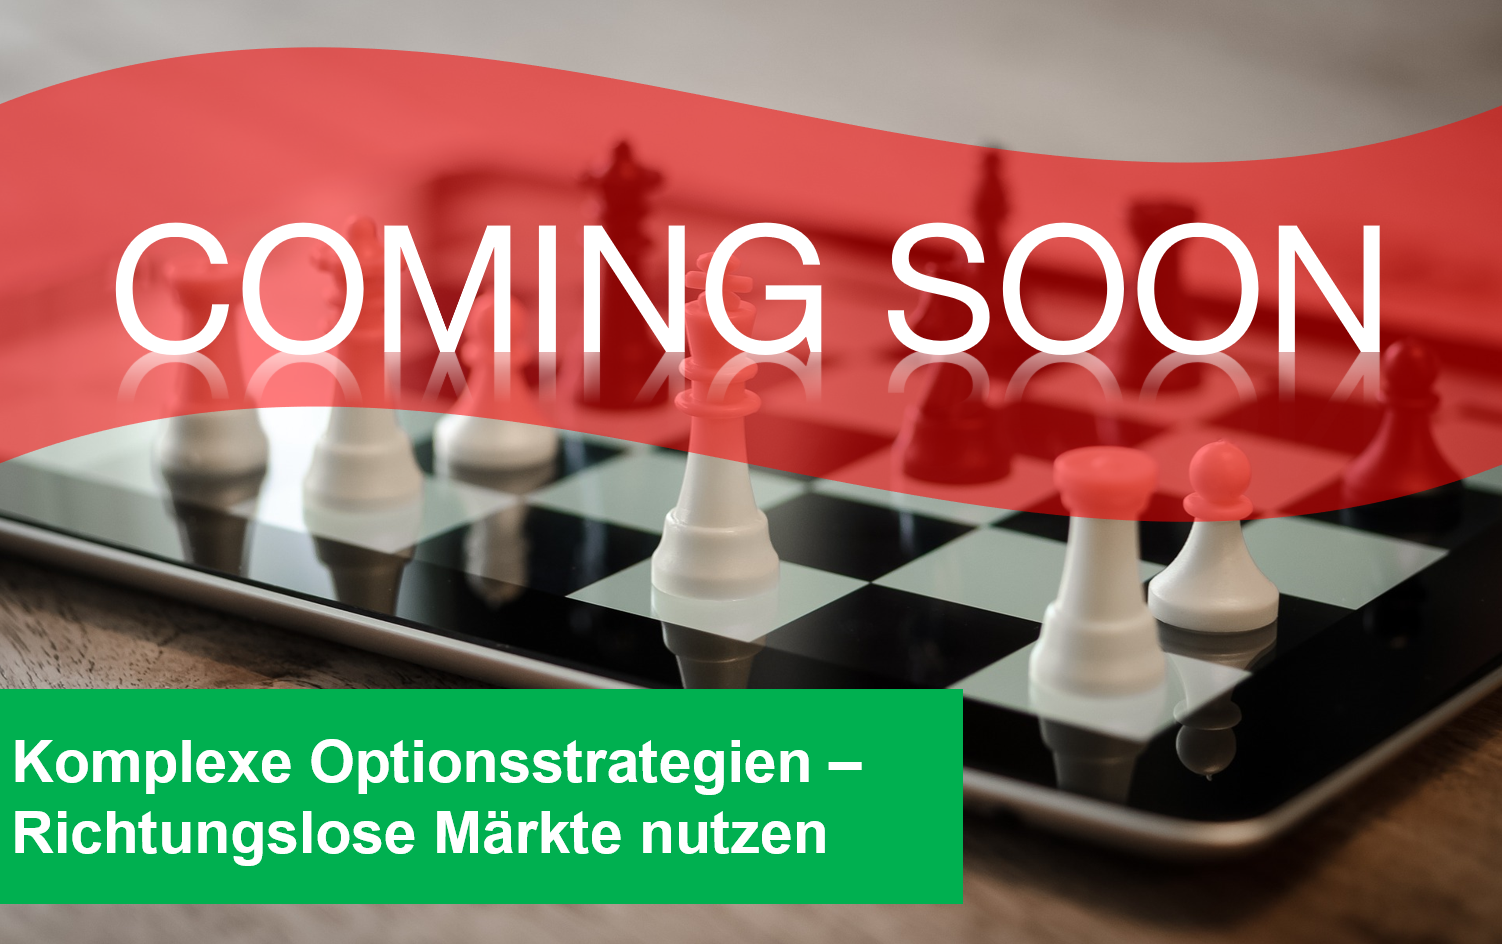 Komplexe Optionsstrategien - Richtungslose Märkte nutzen Option - 10